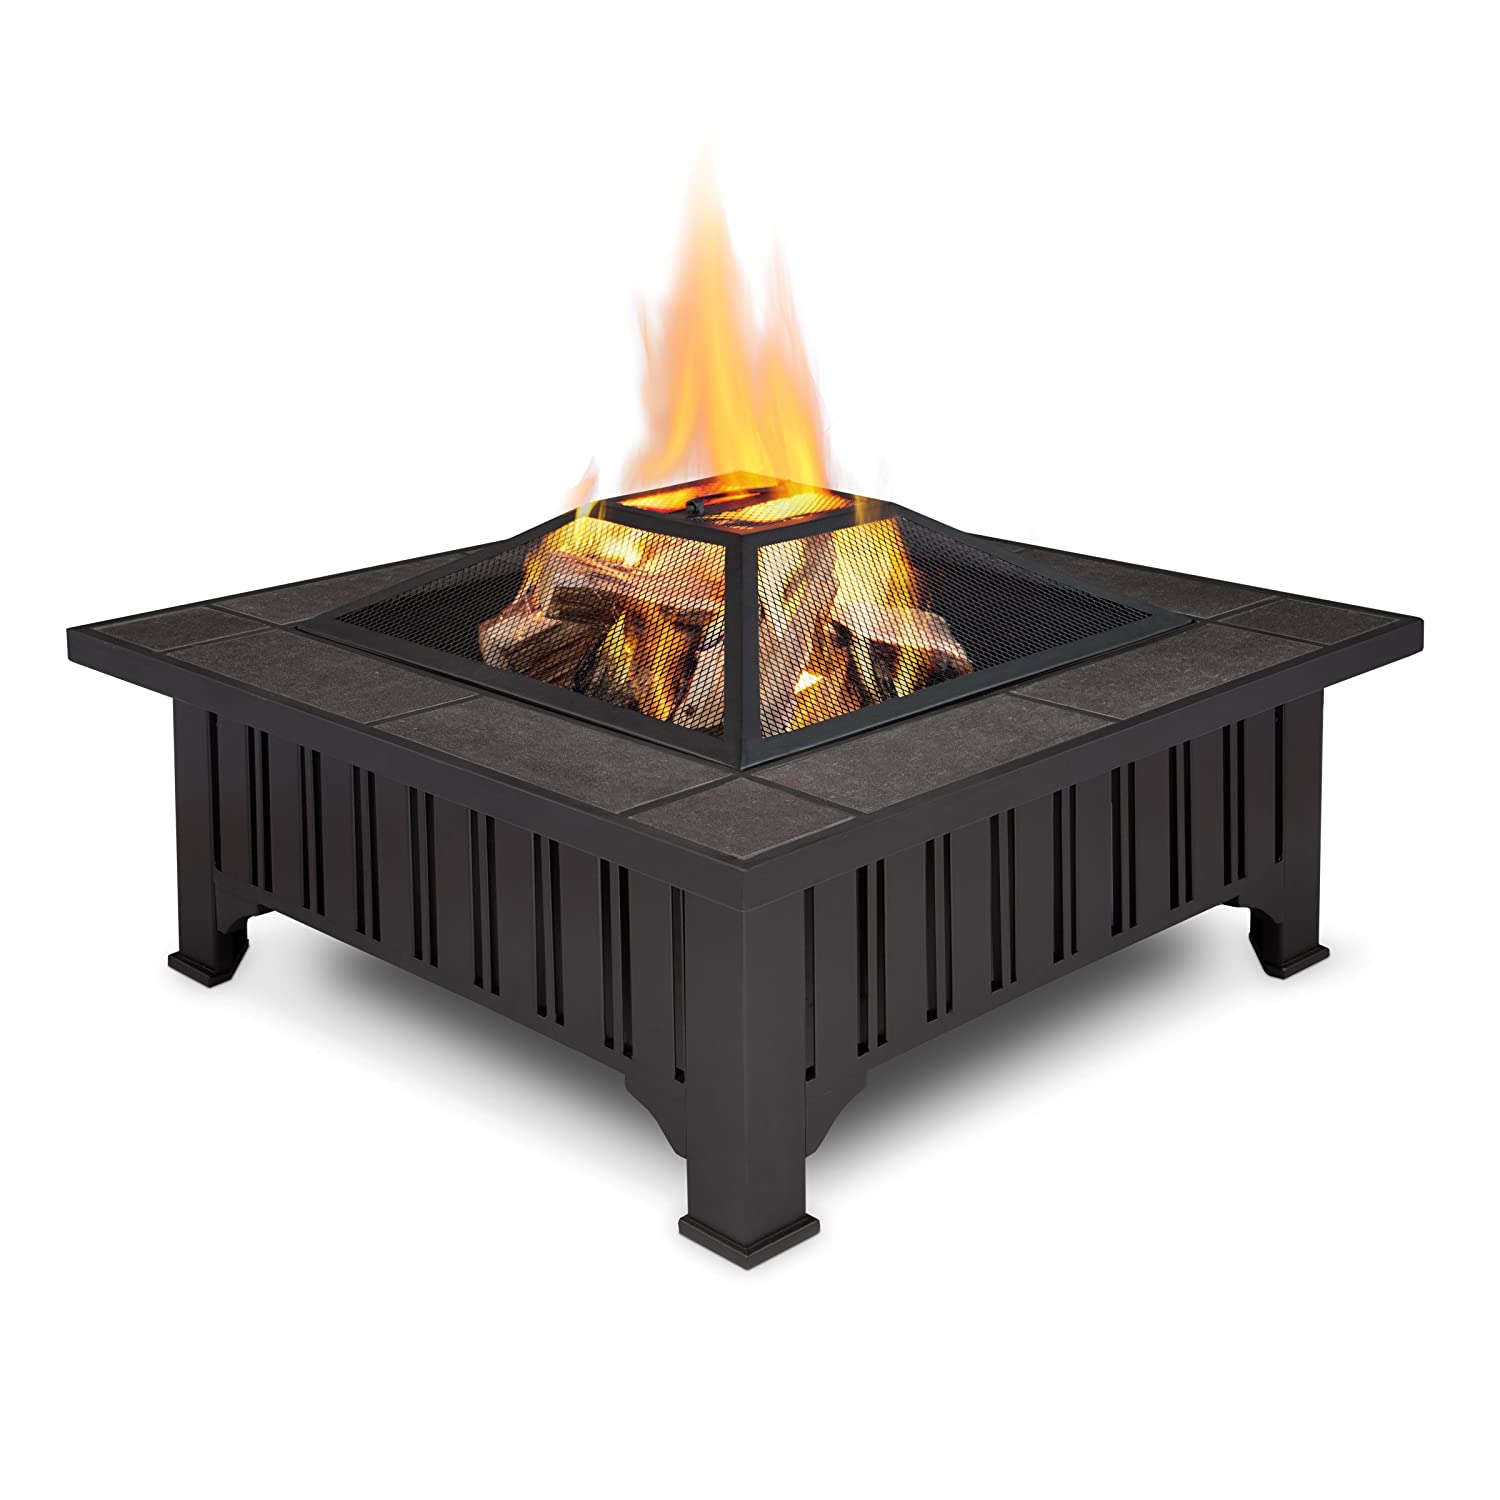 Superb Amazon.com : Real Flame Lafayette Fire Pit : Fire Pit Table : Garden U0026  Outdoor